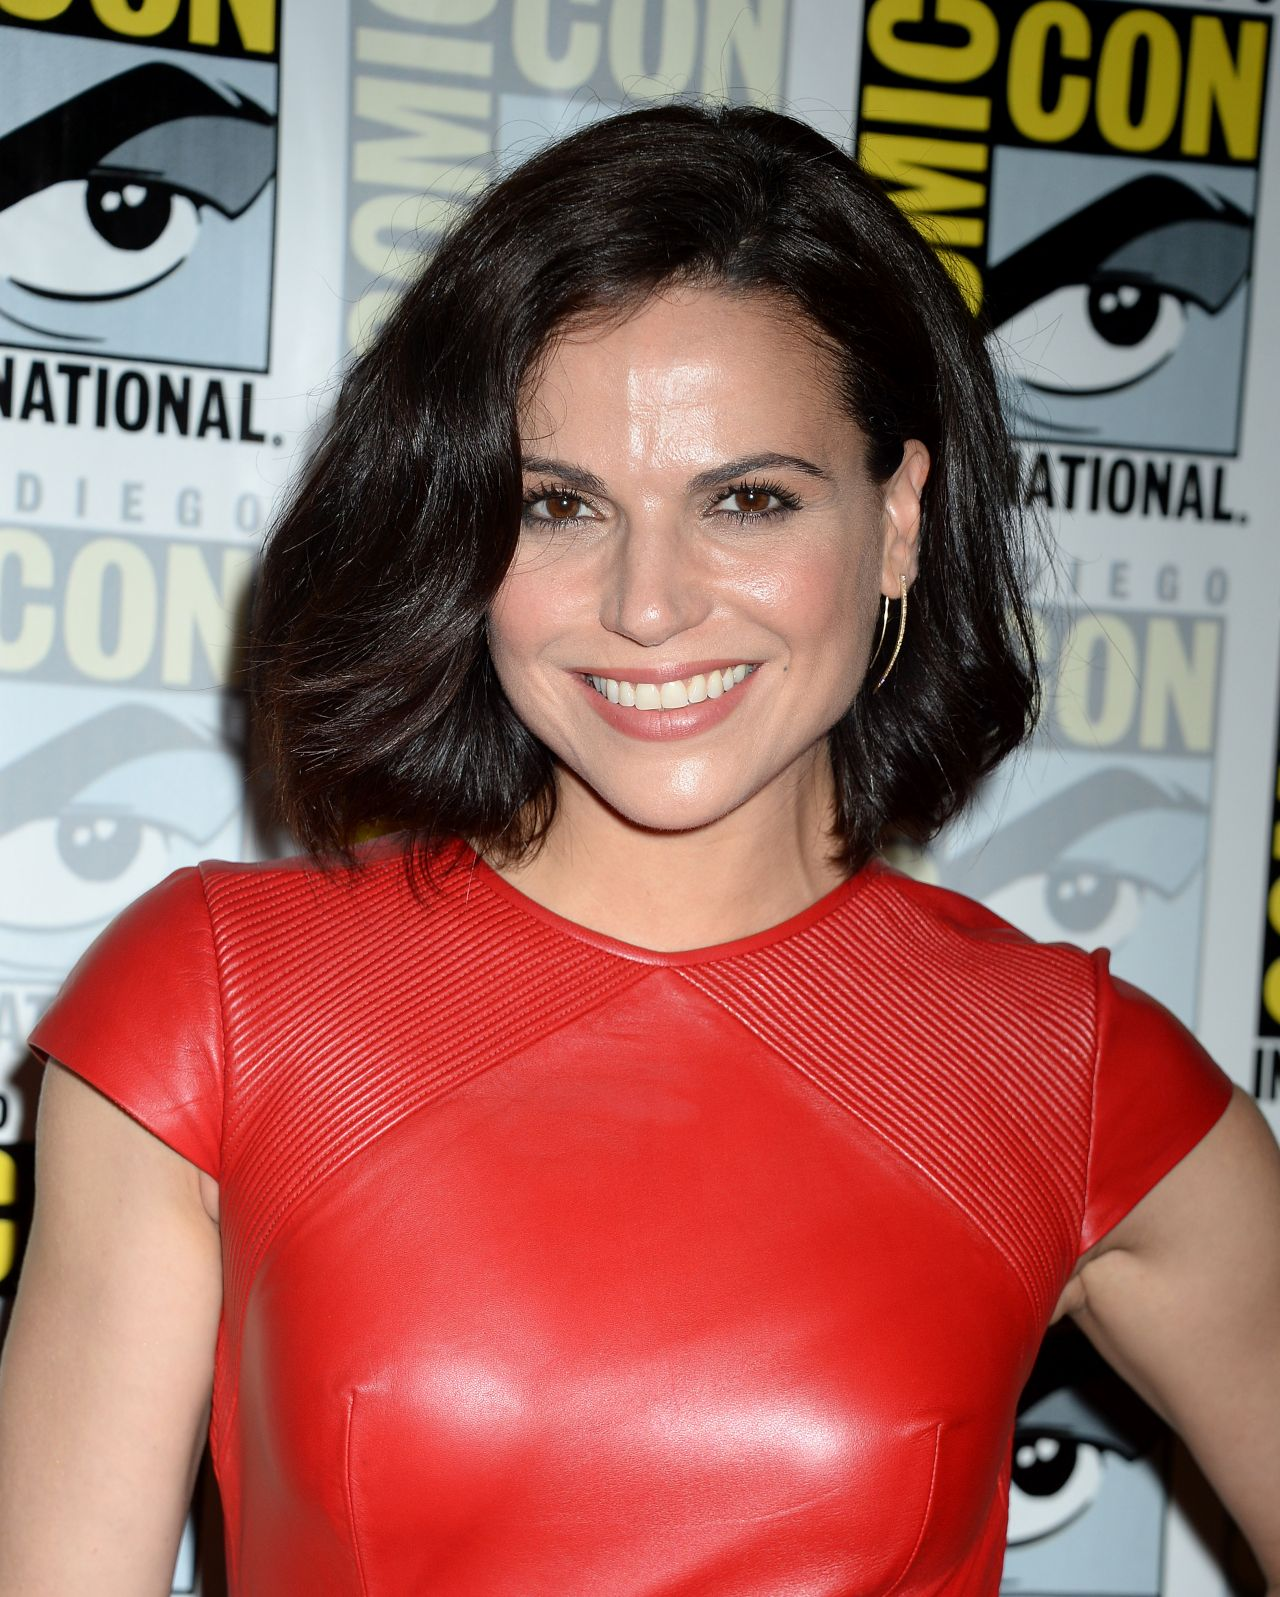 Lana Parrilla Once Upon A Time Press Line At Comic Con